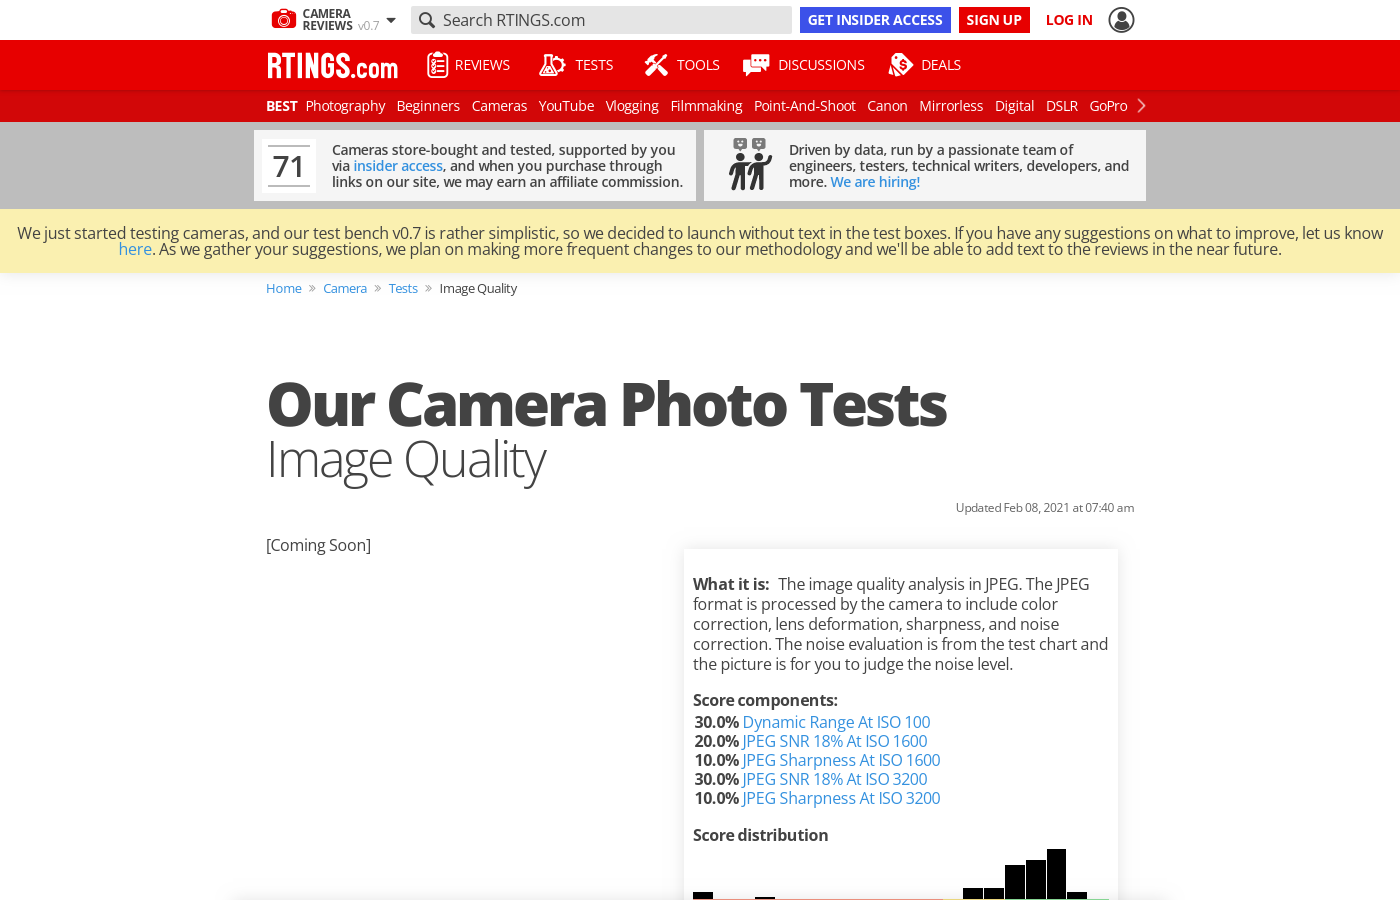 Our Camera Photo Tests: Image Quality